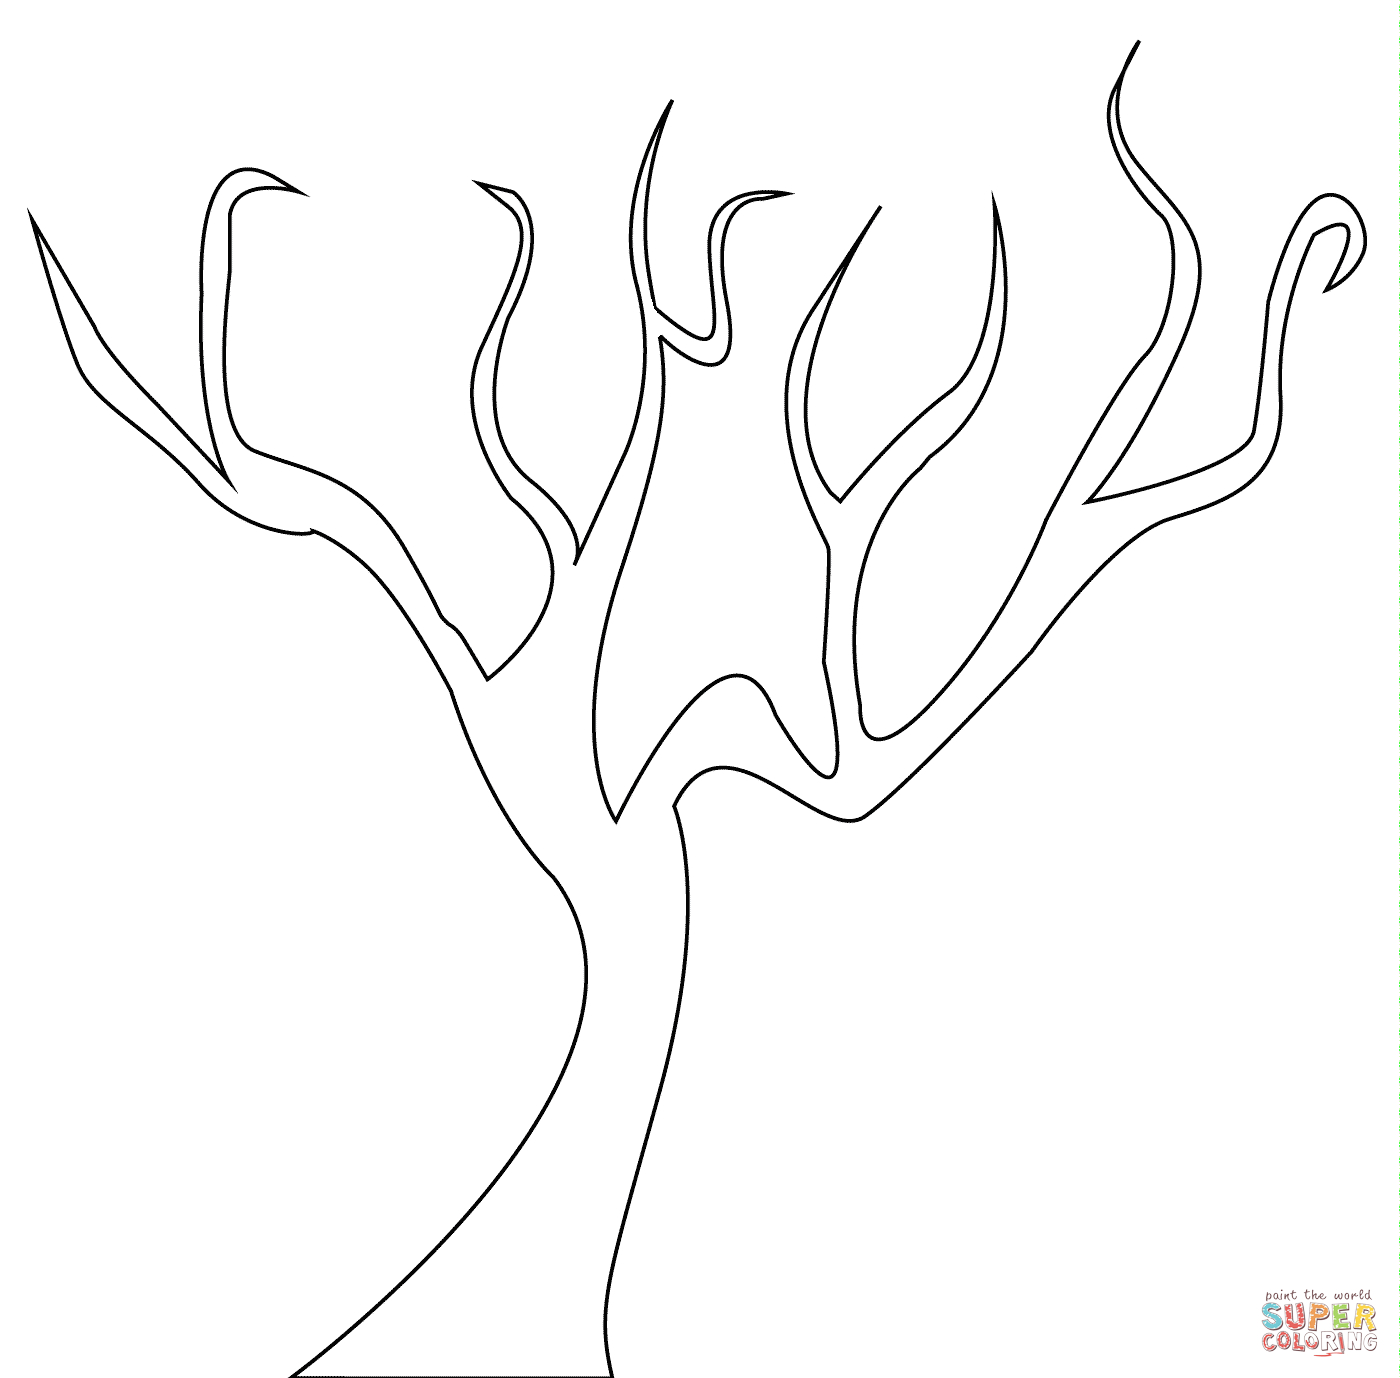 Bare Tree Coloring Page | Free Printable Coloring Pages - Tree Coloring Pages Free Printable